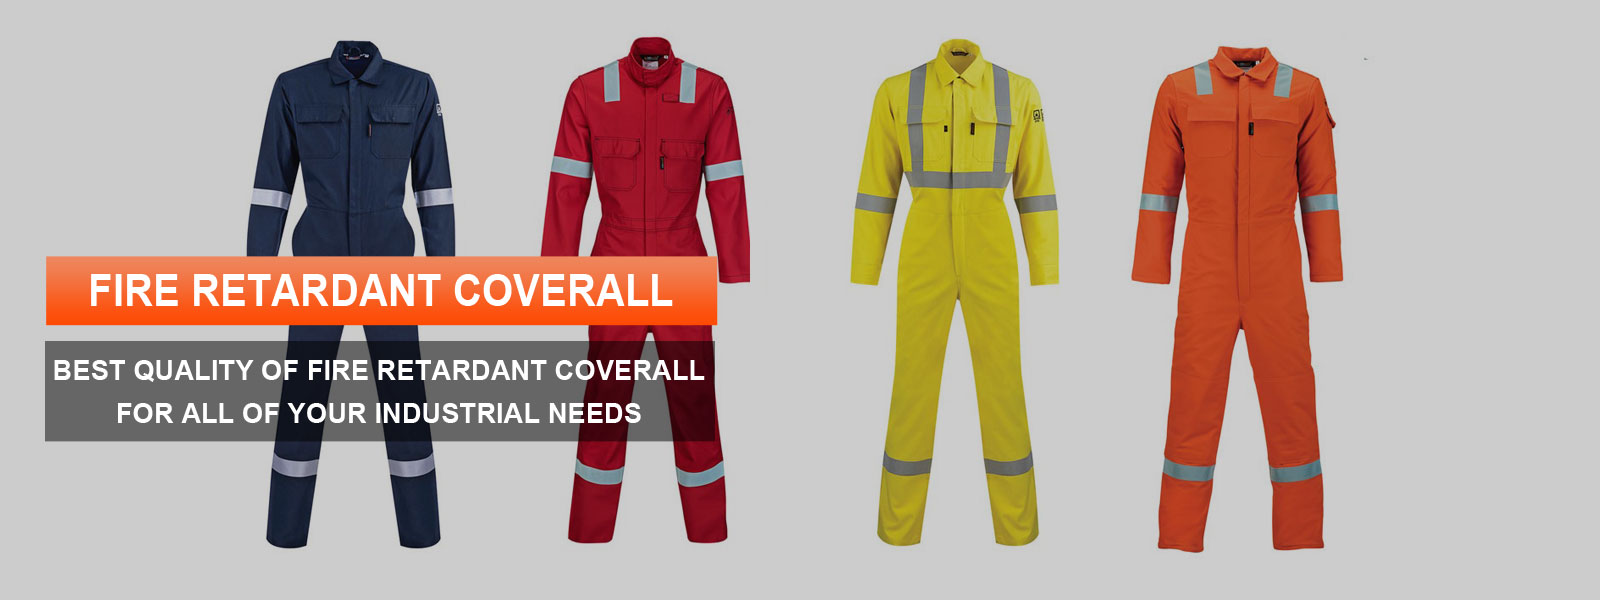 Fire Retardant Coverall Manufacturers in Belize